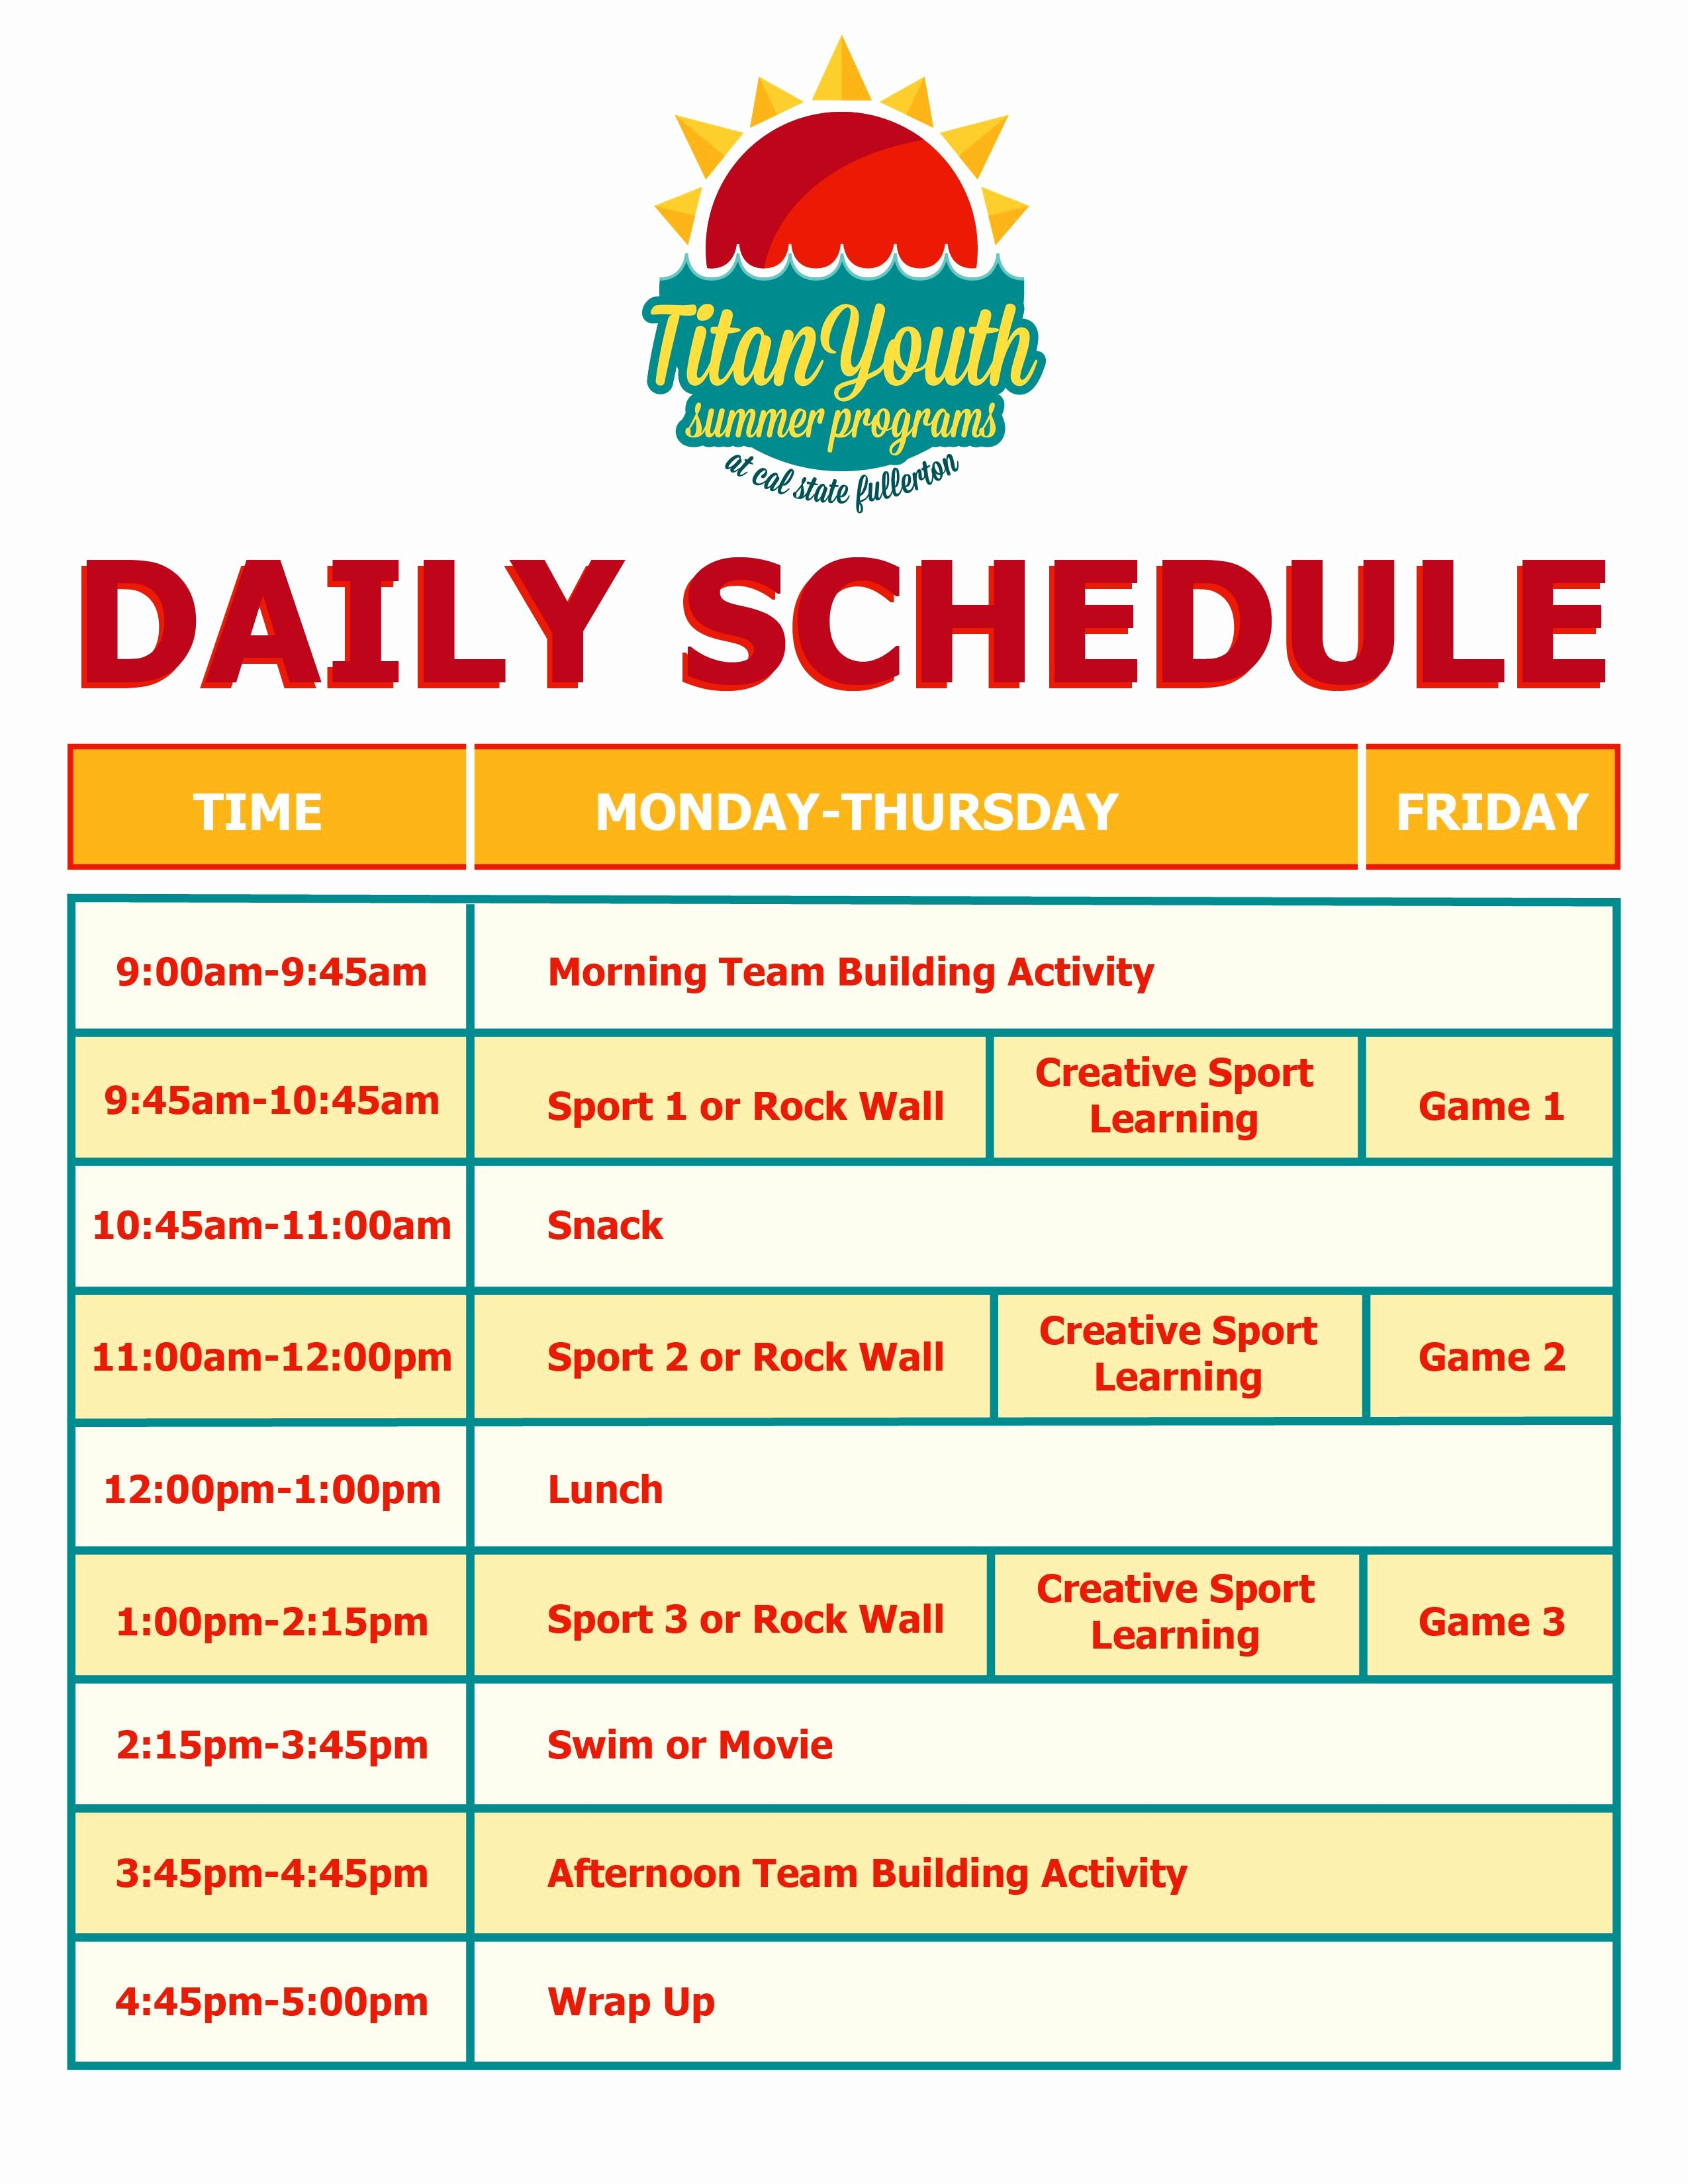 Summer Camp Daily Schedule Sample Luxury Maximize Your Camping Experience with these Ideas Read More Details by Clicking On the Image